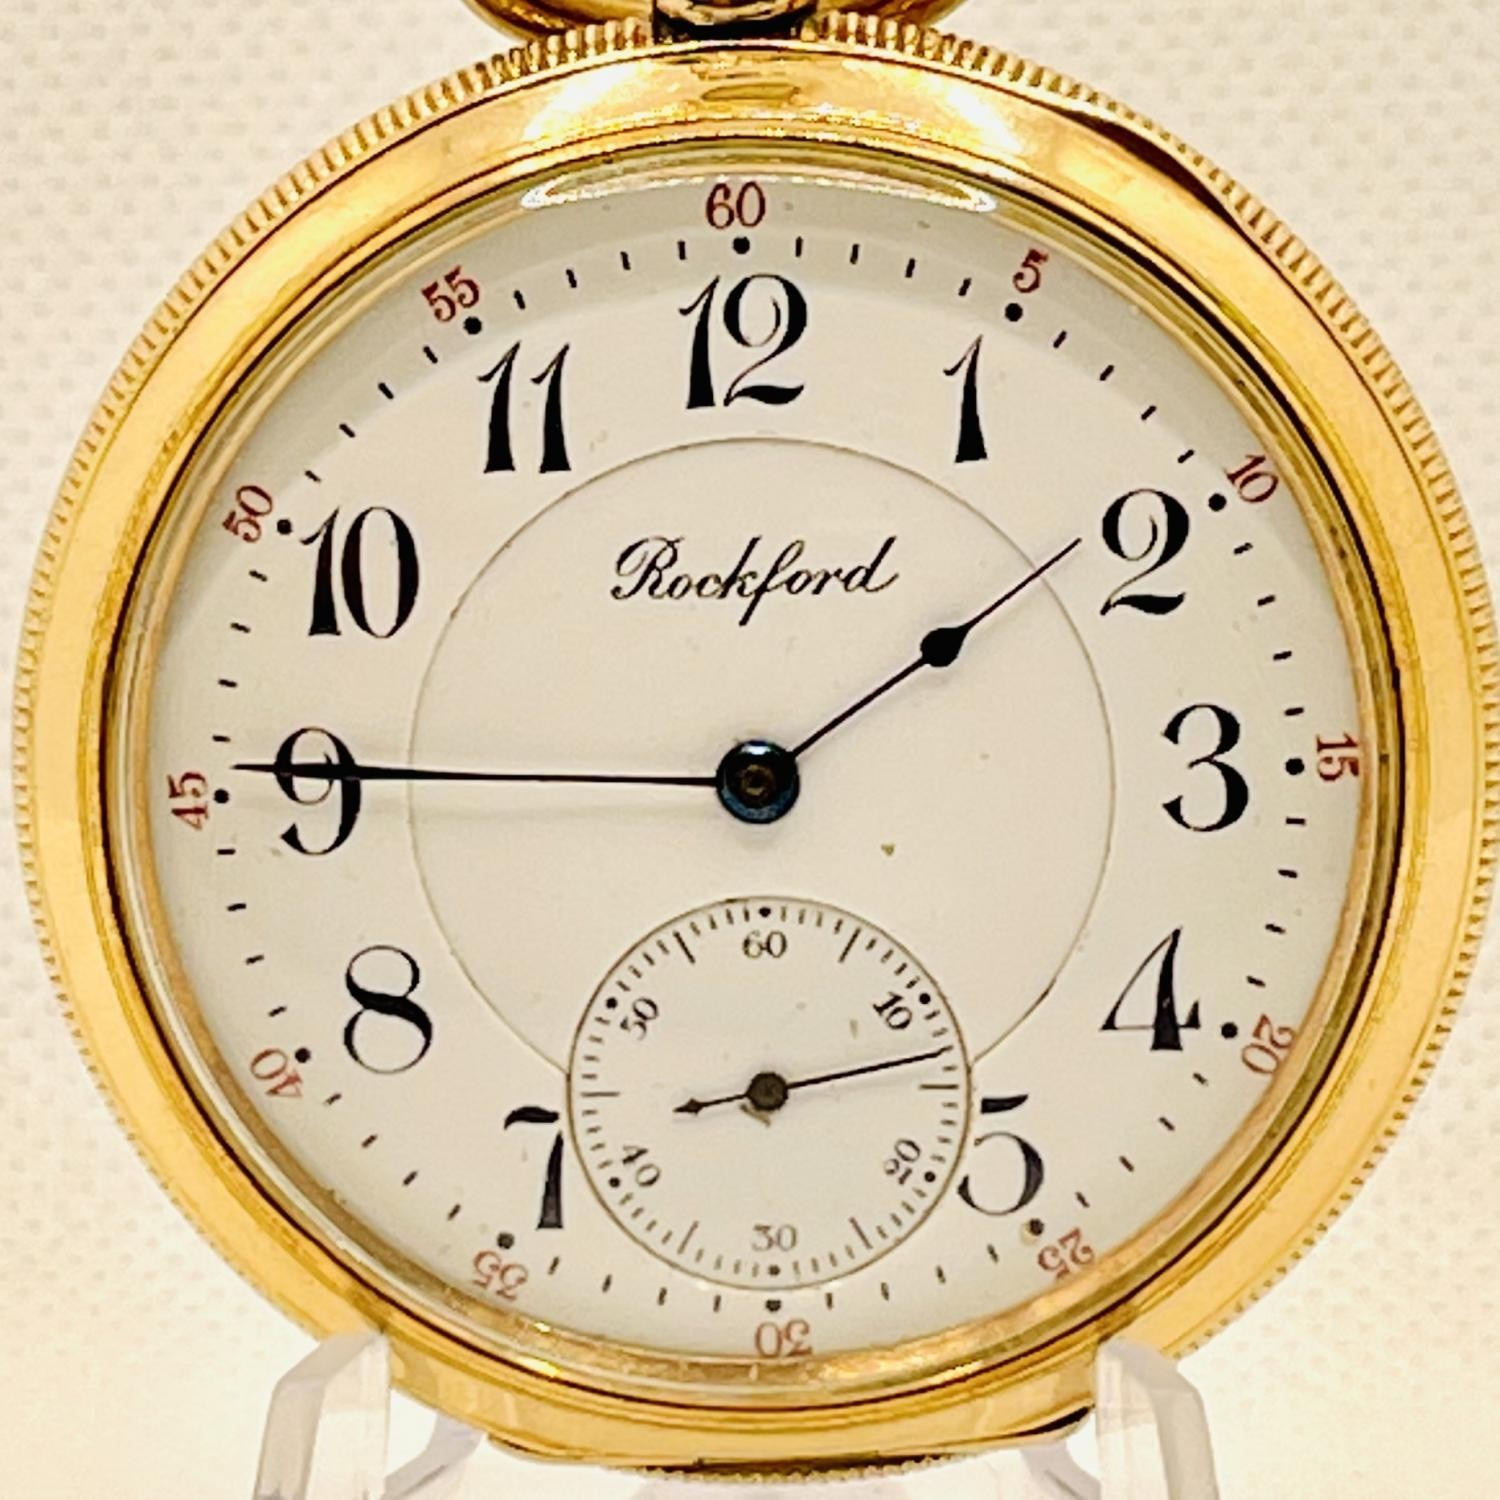 Image of Rockford 405 #674307 Dial